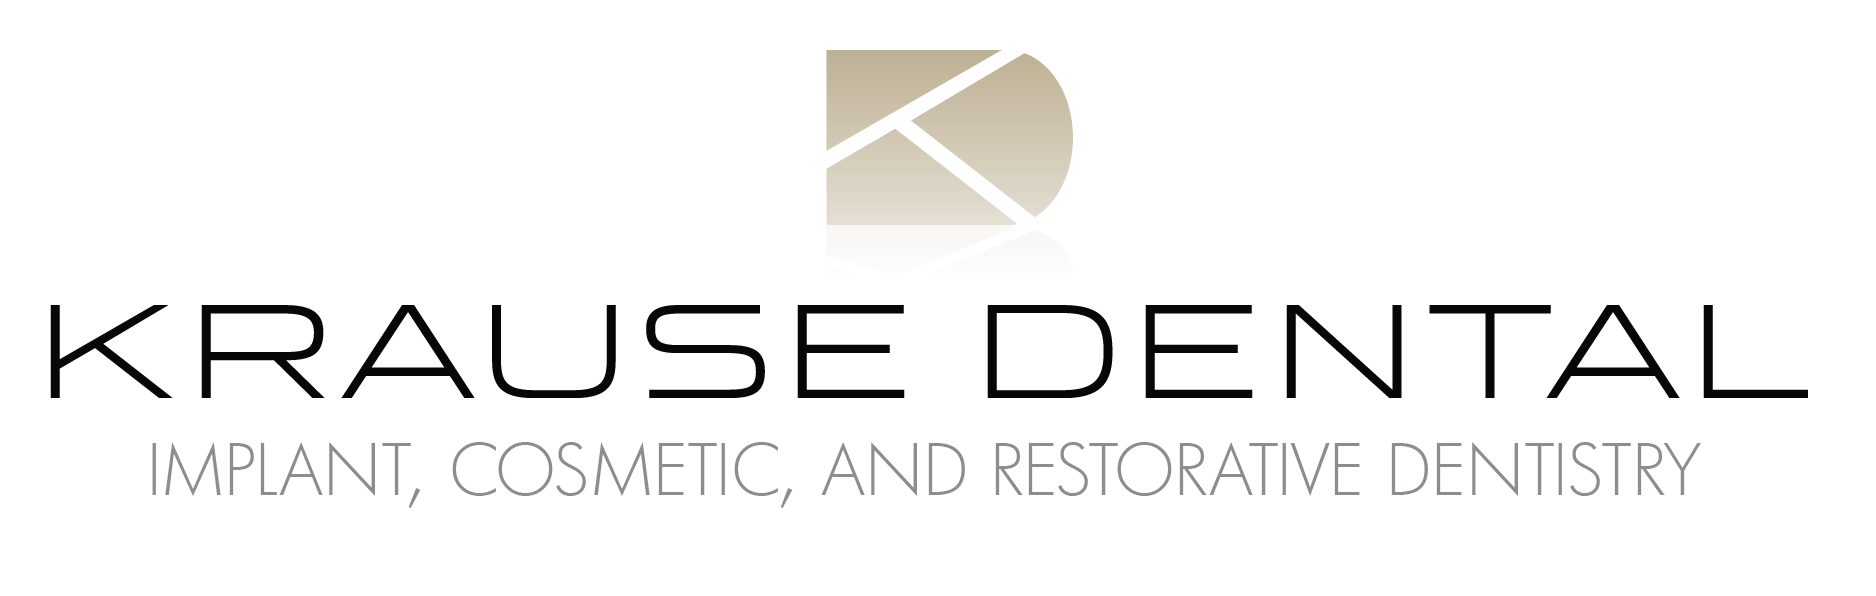 Krause Dental